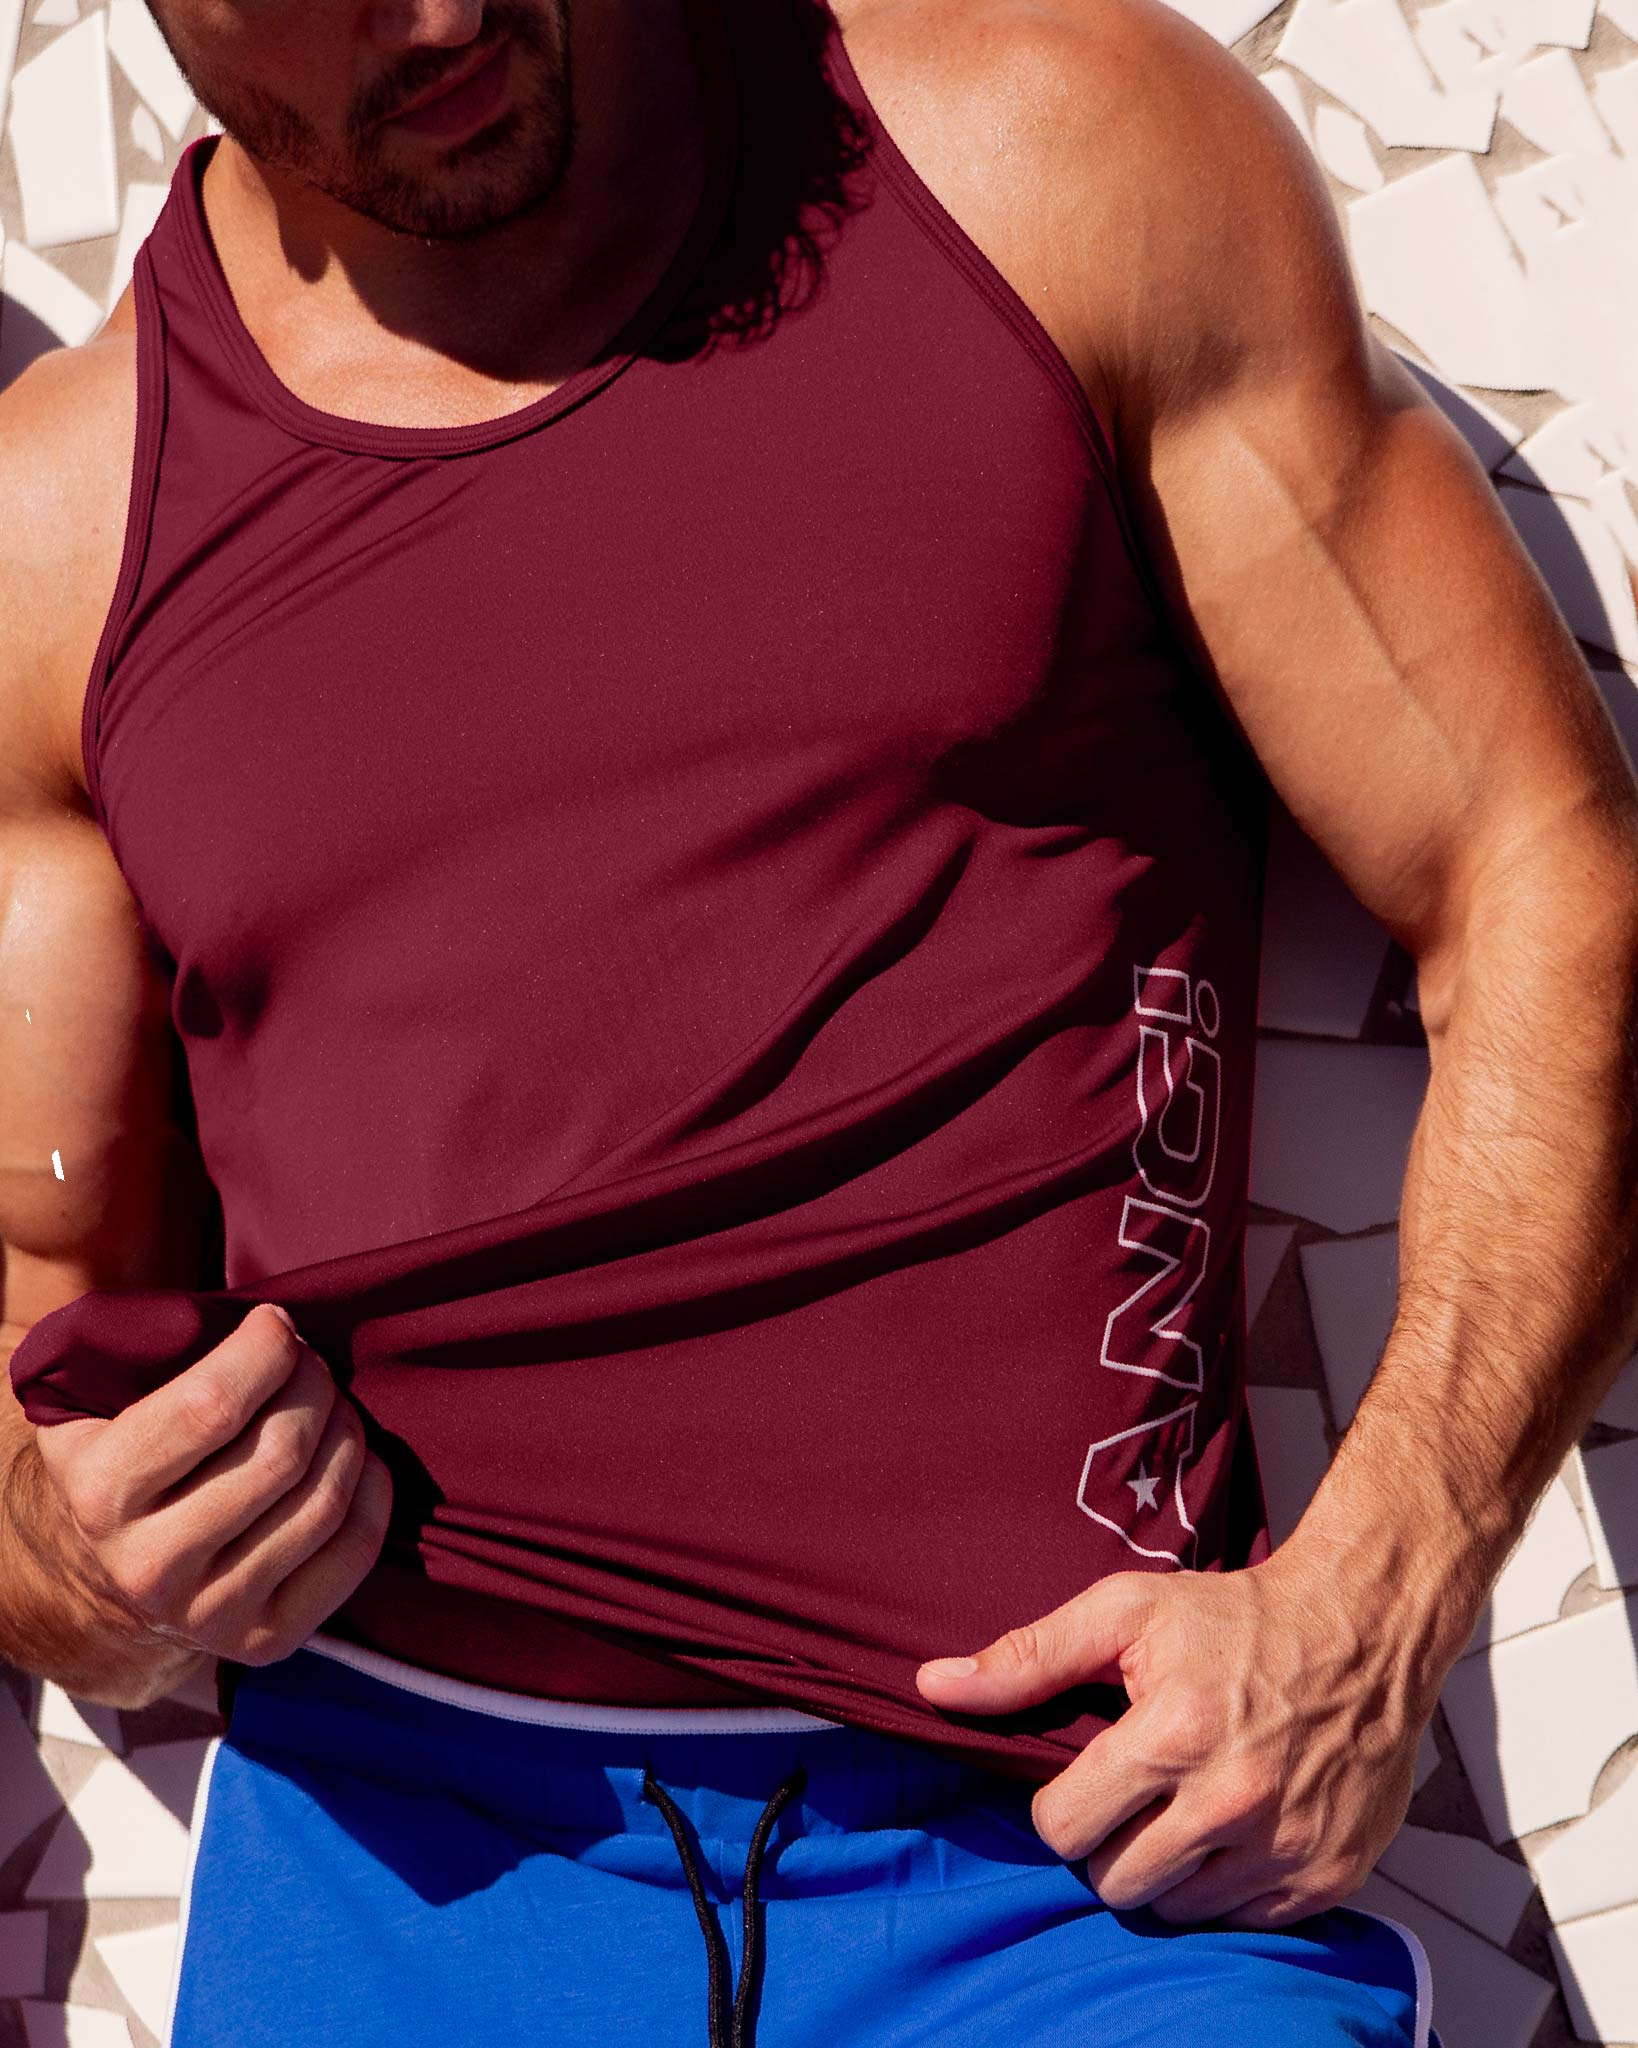 MACH RED Tank Top Bang Clothes Men Tank Tops Beach Gear editorial